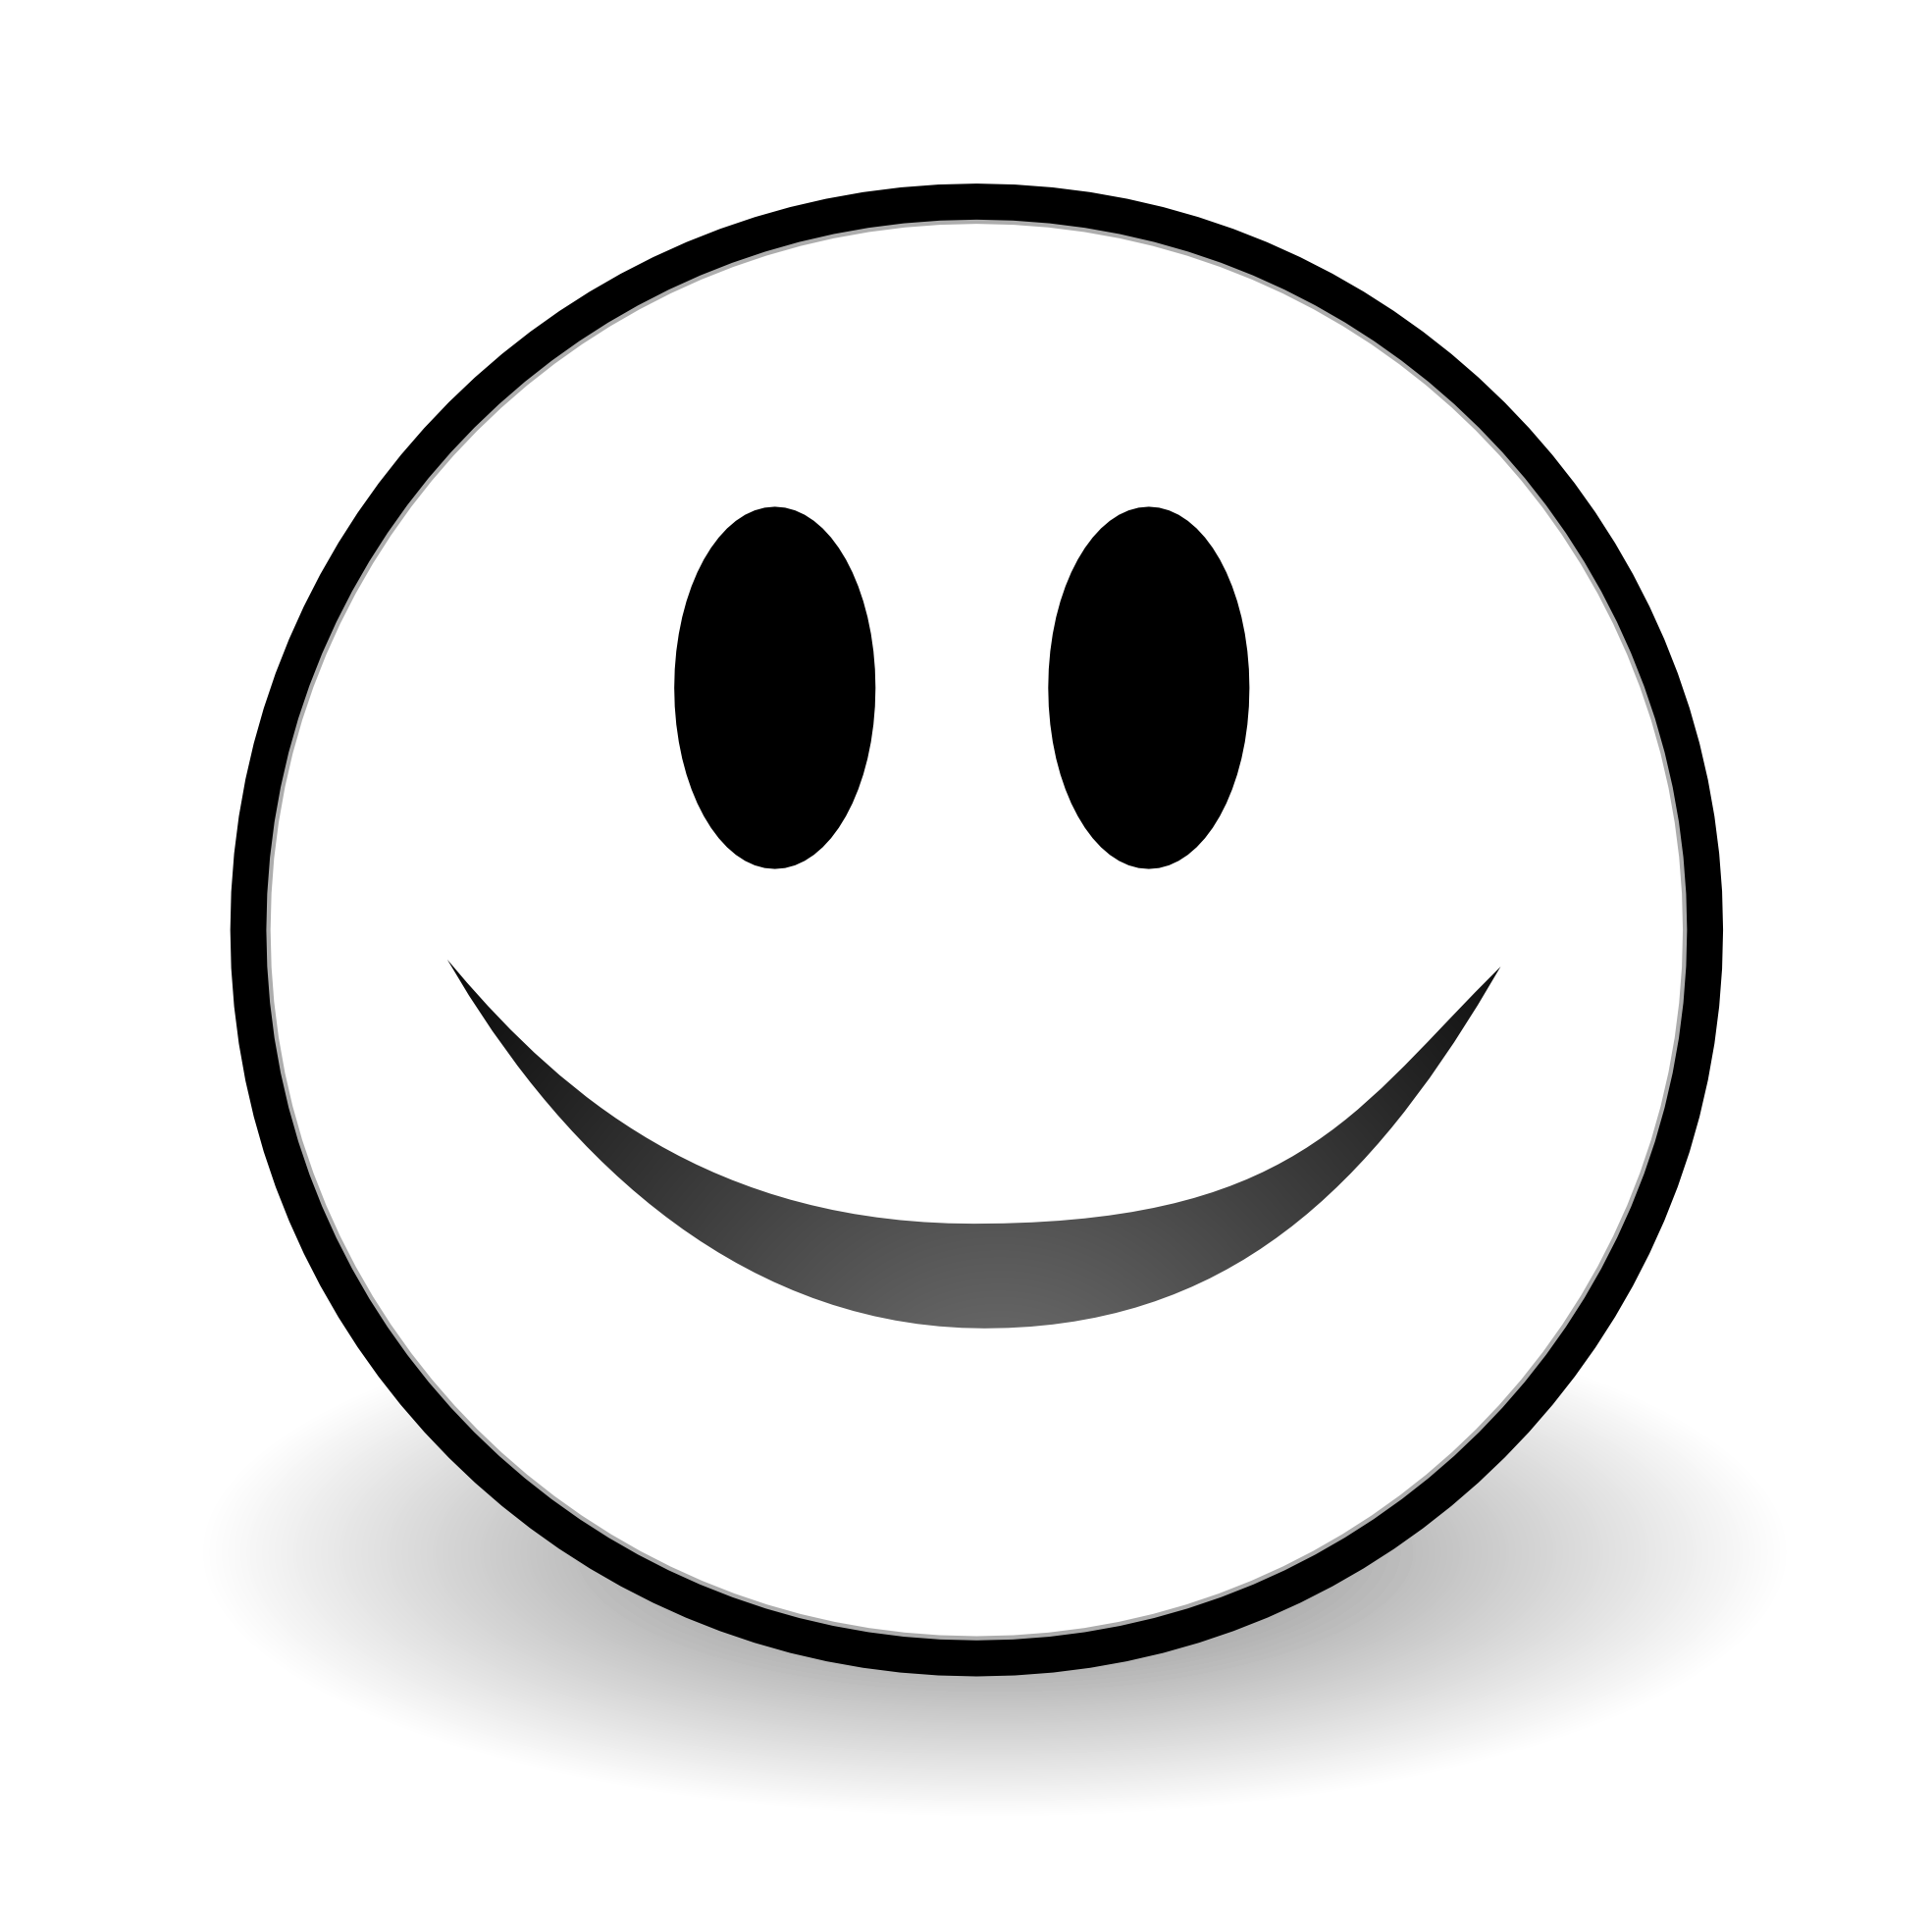 Smiley face clip art emoticon. Happy smile clipart free